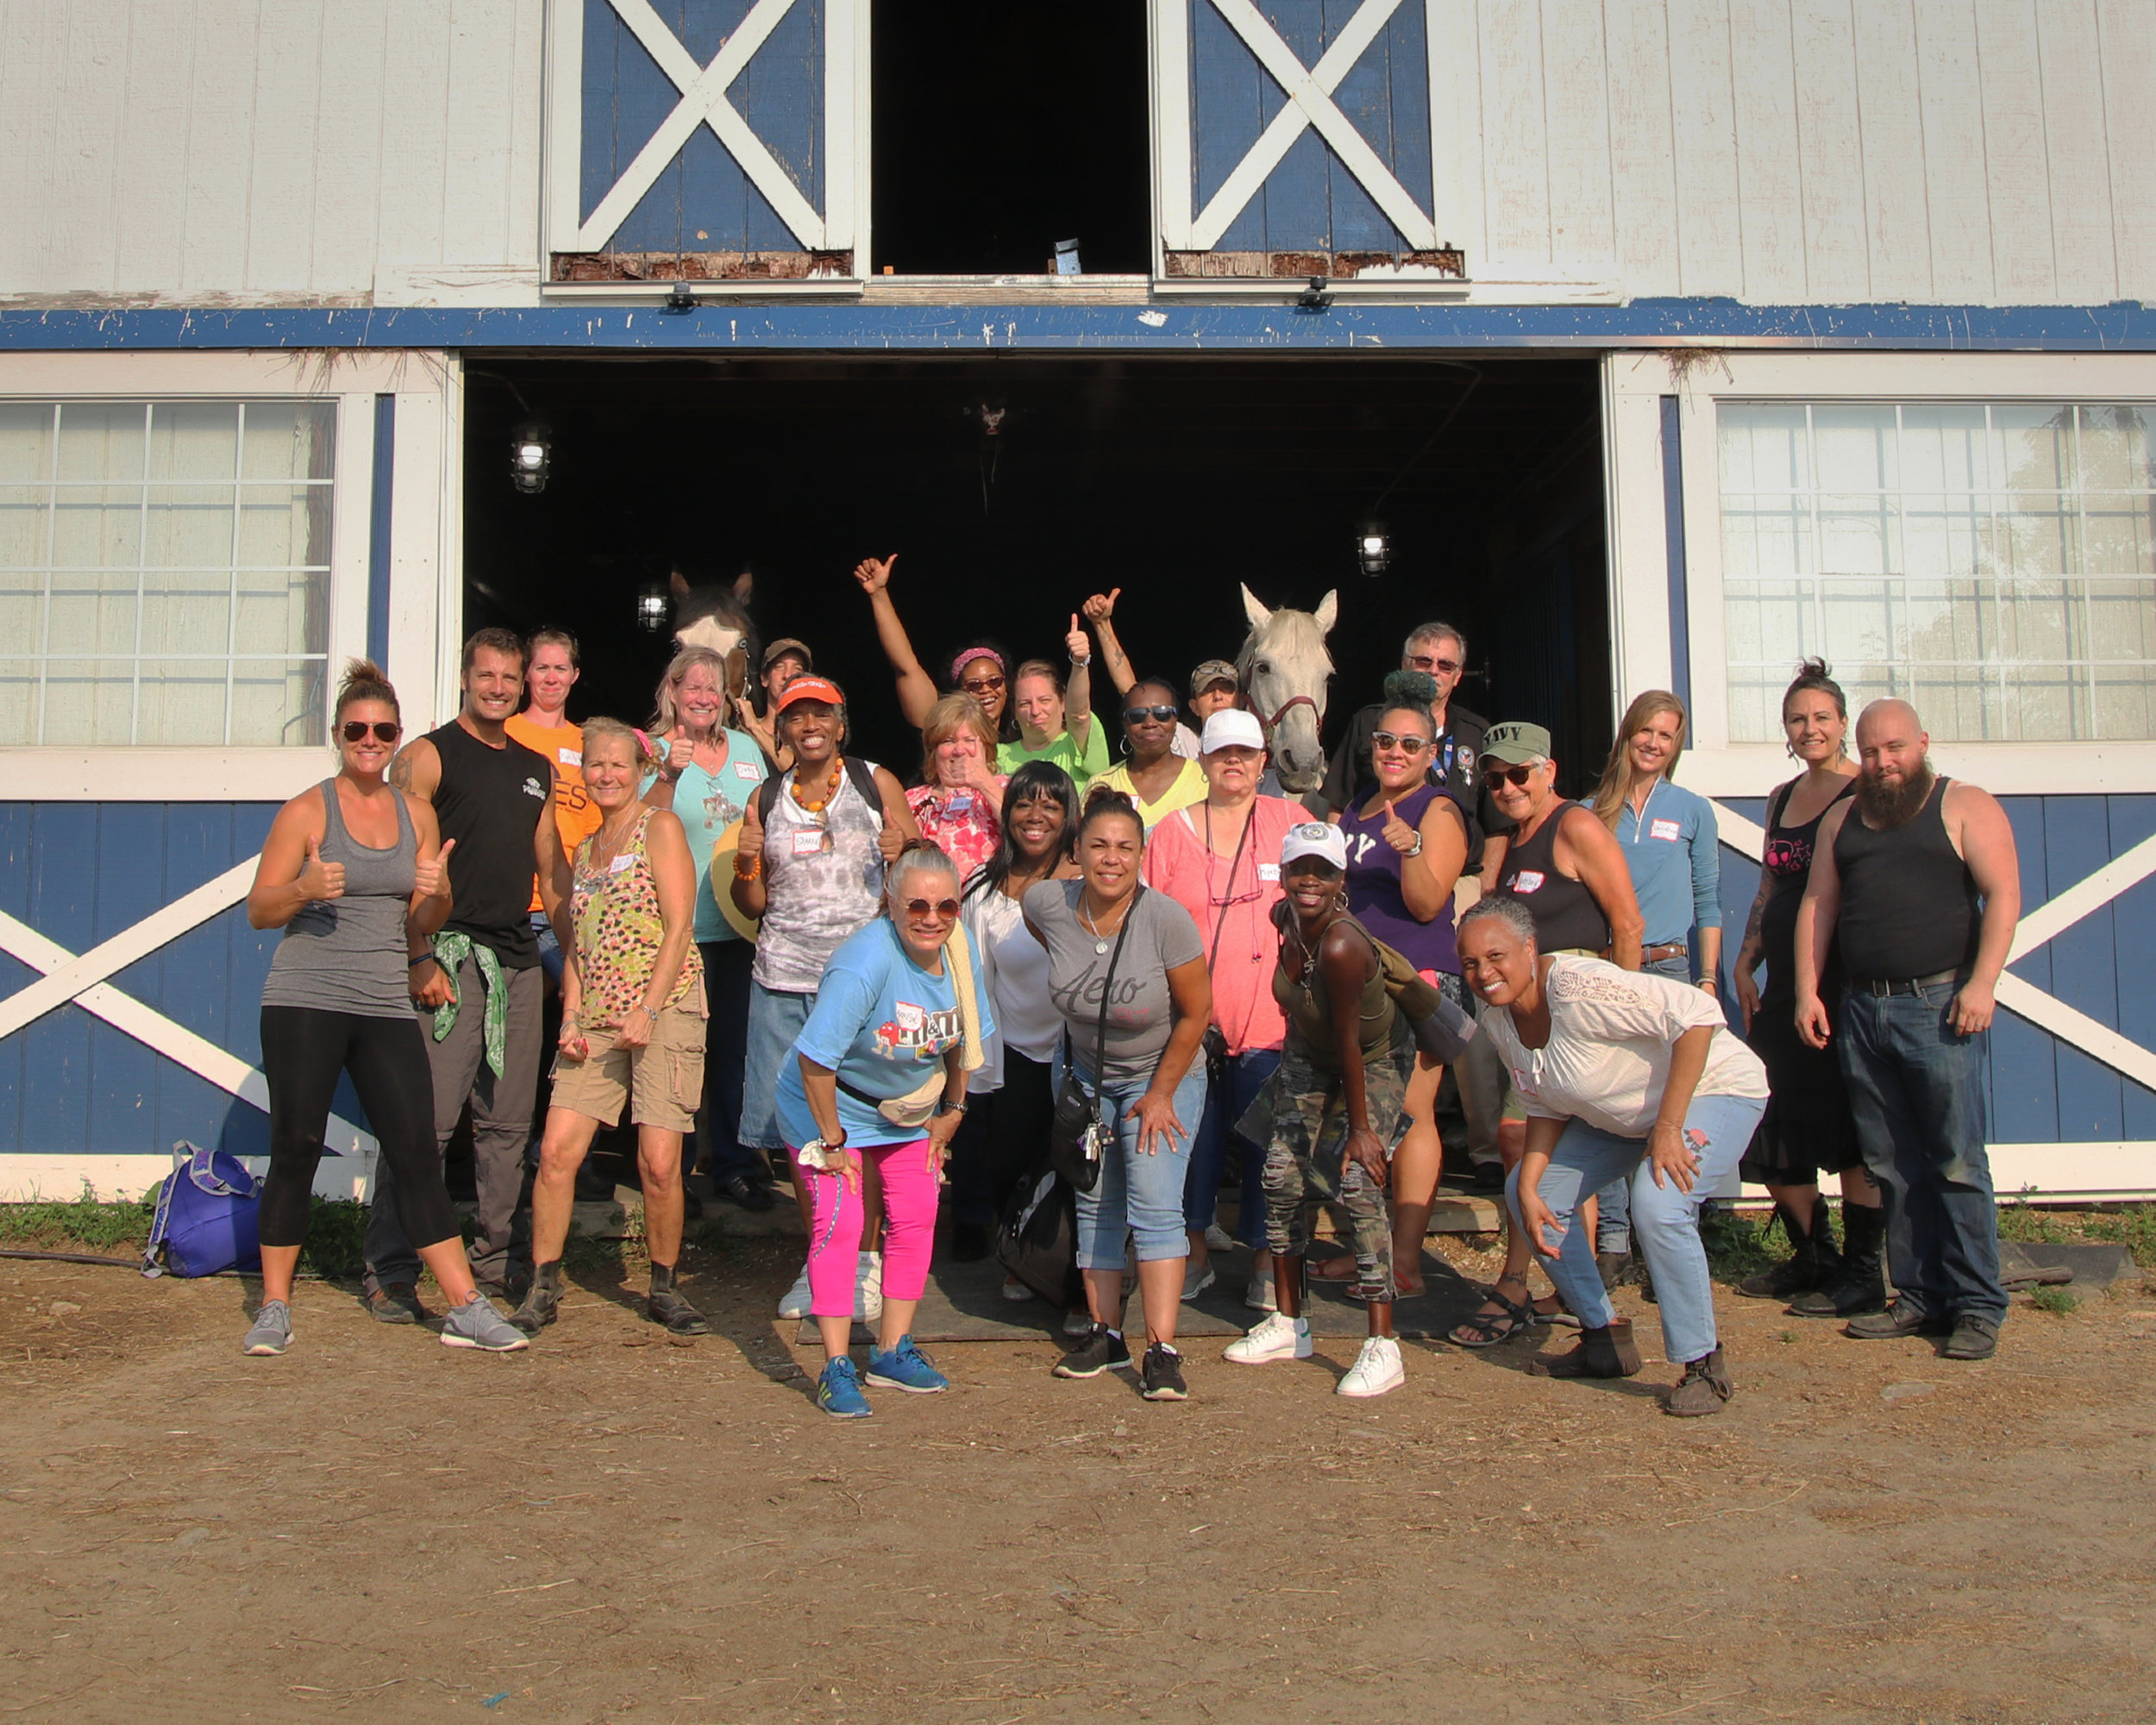 2017 Women Warrior's Workshop with Play For Your Freedom. A fantastic group of female vets joined us for a day of equine therapy, sports, yoga and art therapy. There was even a solar eclipse!!